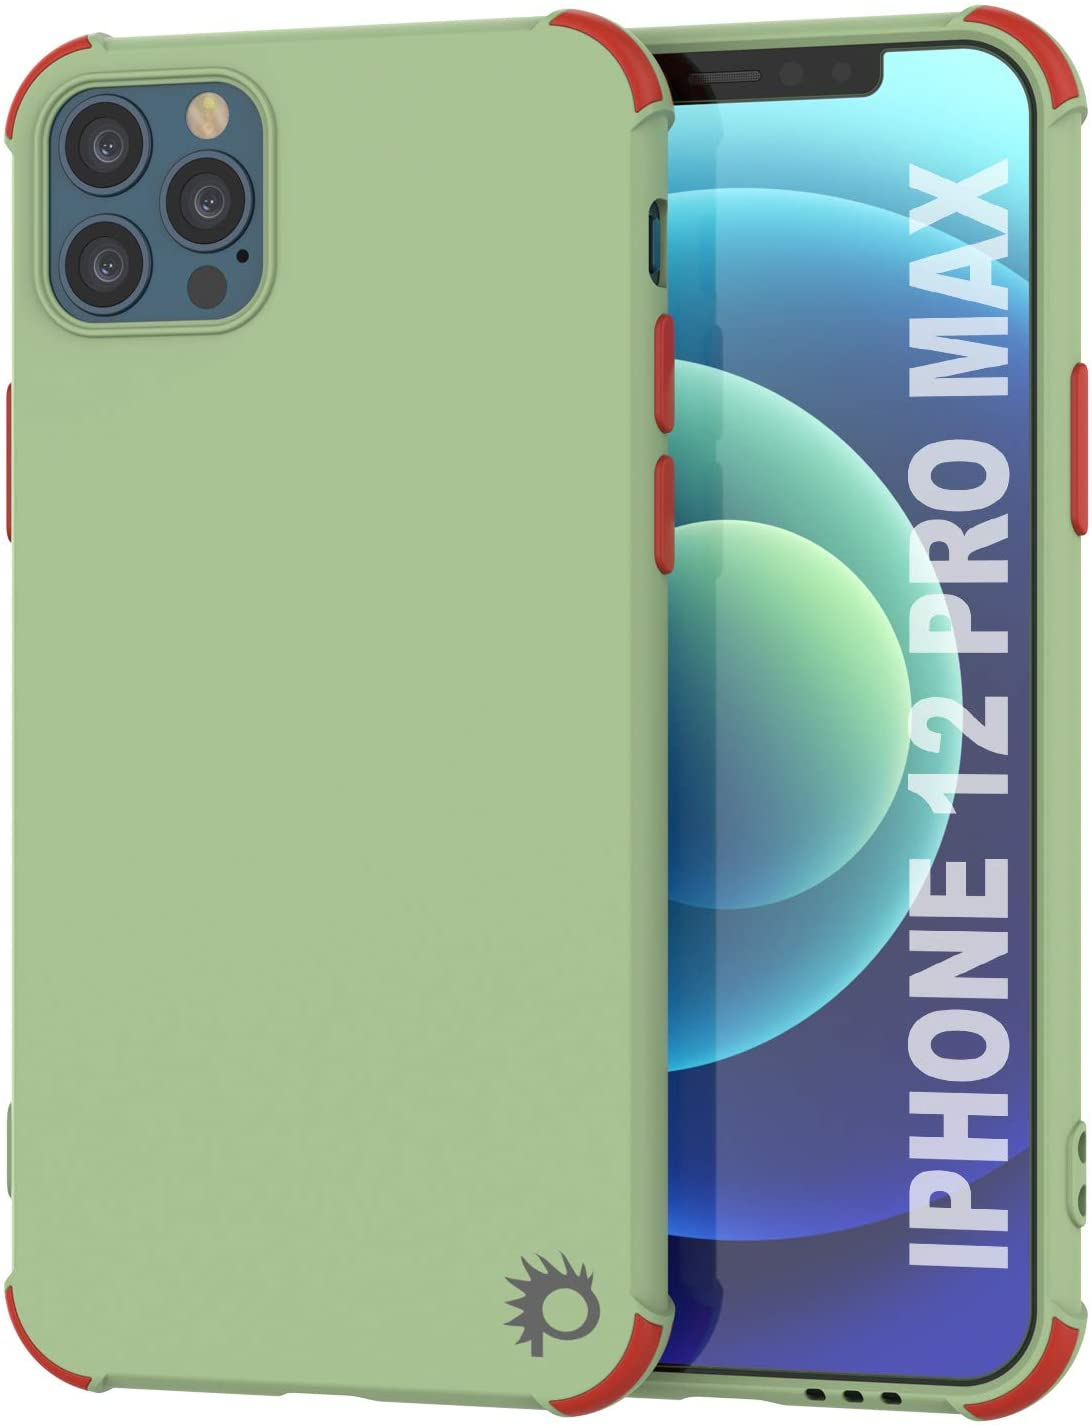 Punkcase Protective & Lightweight TPU Case [Sunshine Series] for iPhone 12 Pro Max [Light Green]